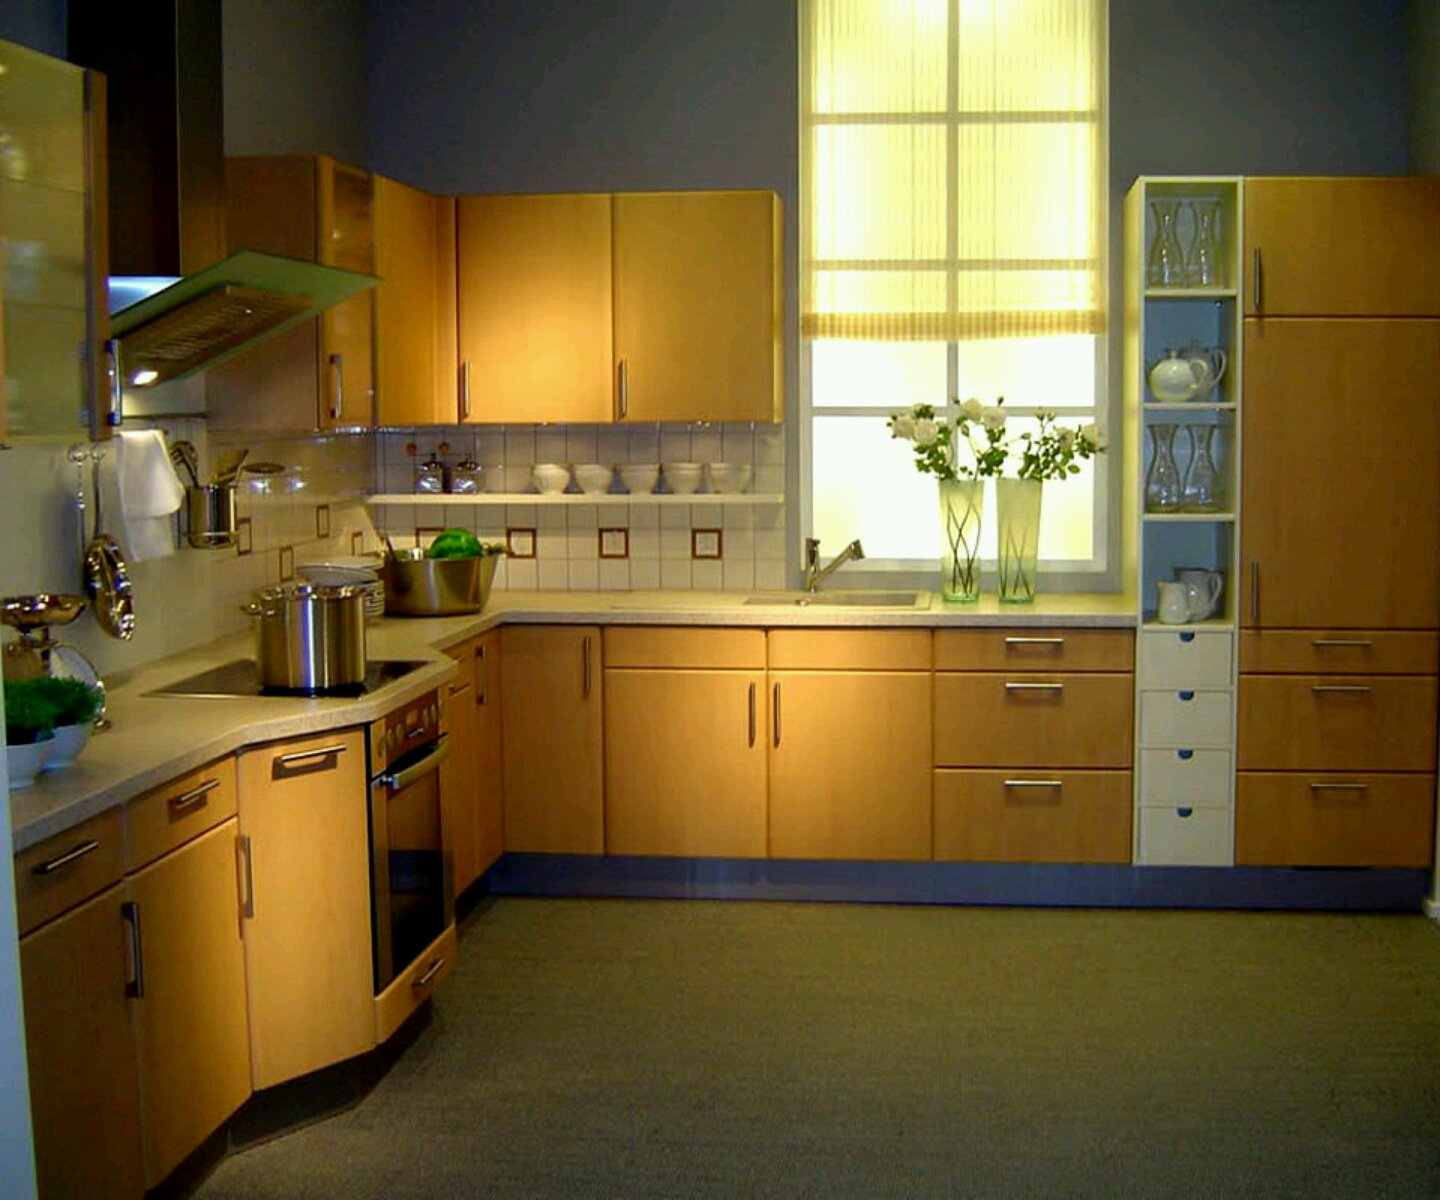 best kitchen designs 2012 new home designs modern kitchen cabinets designs 460